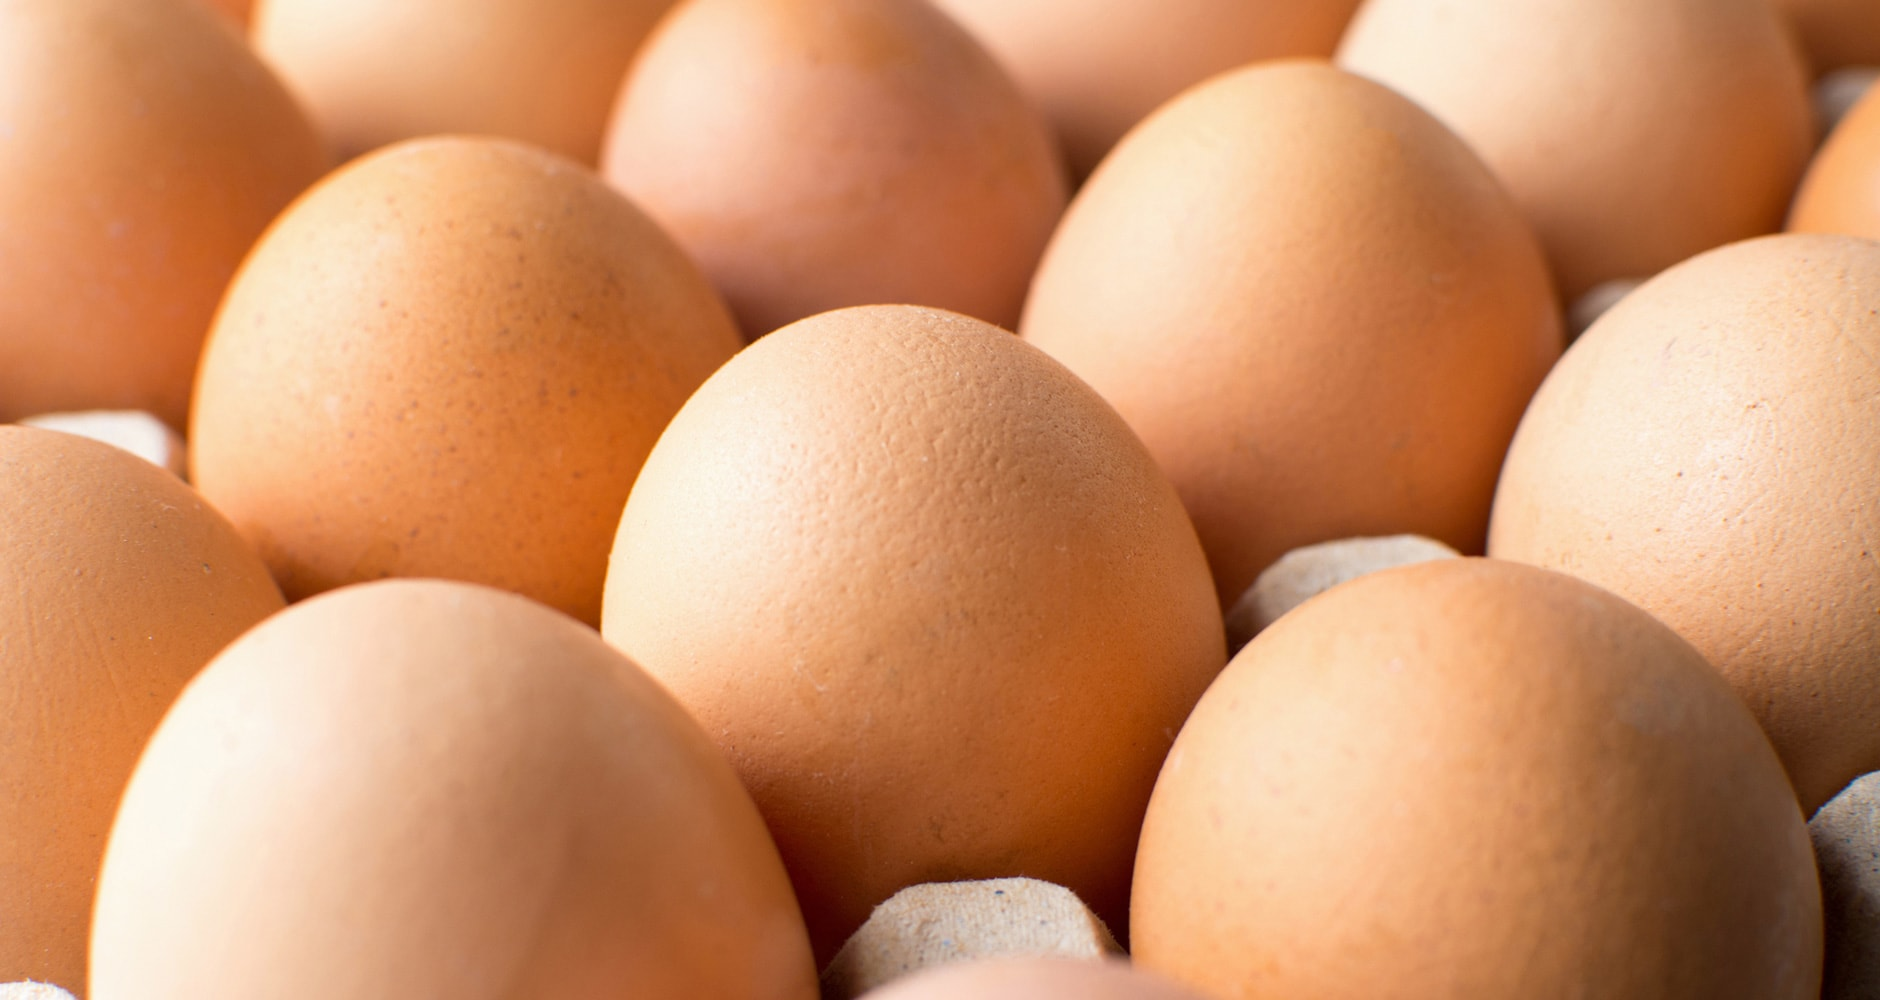 Cracking the Code on Supermarket Eggs: How Fresh Are They?image preview